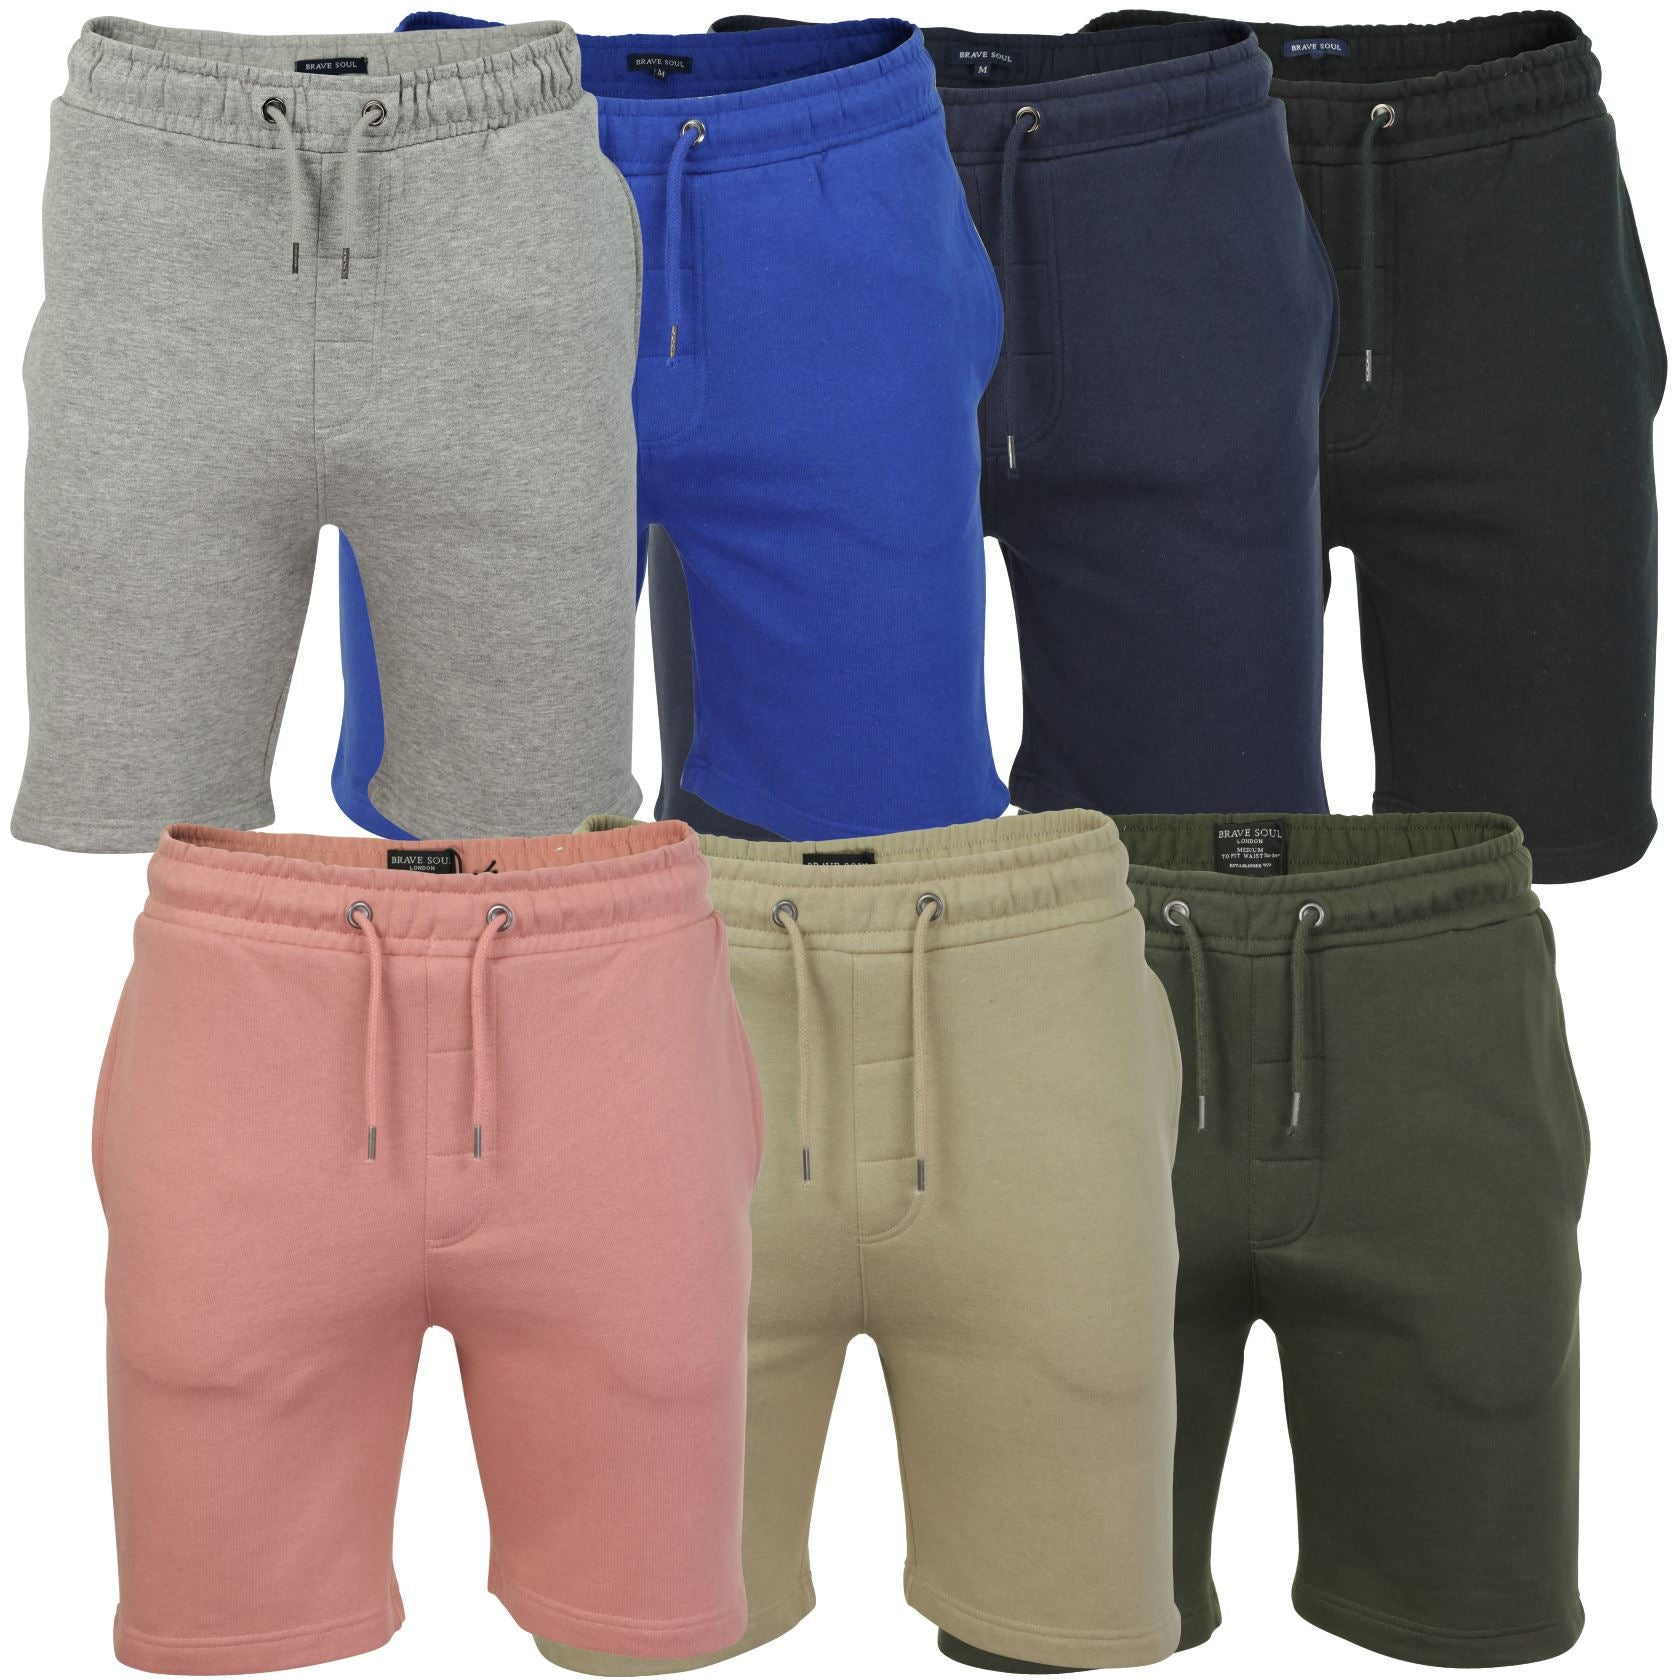 Mens Jogger Shorts by Brave Soul 'Tarley' Sports Training Summer Gym Pants_01_Mts-69Tarley